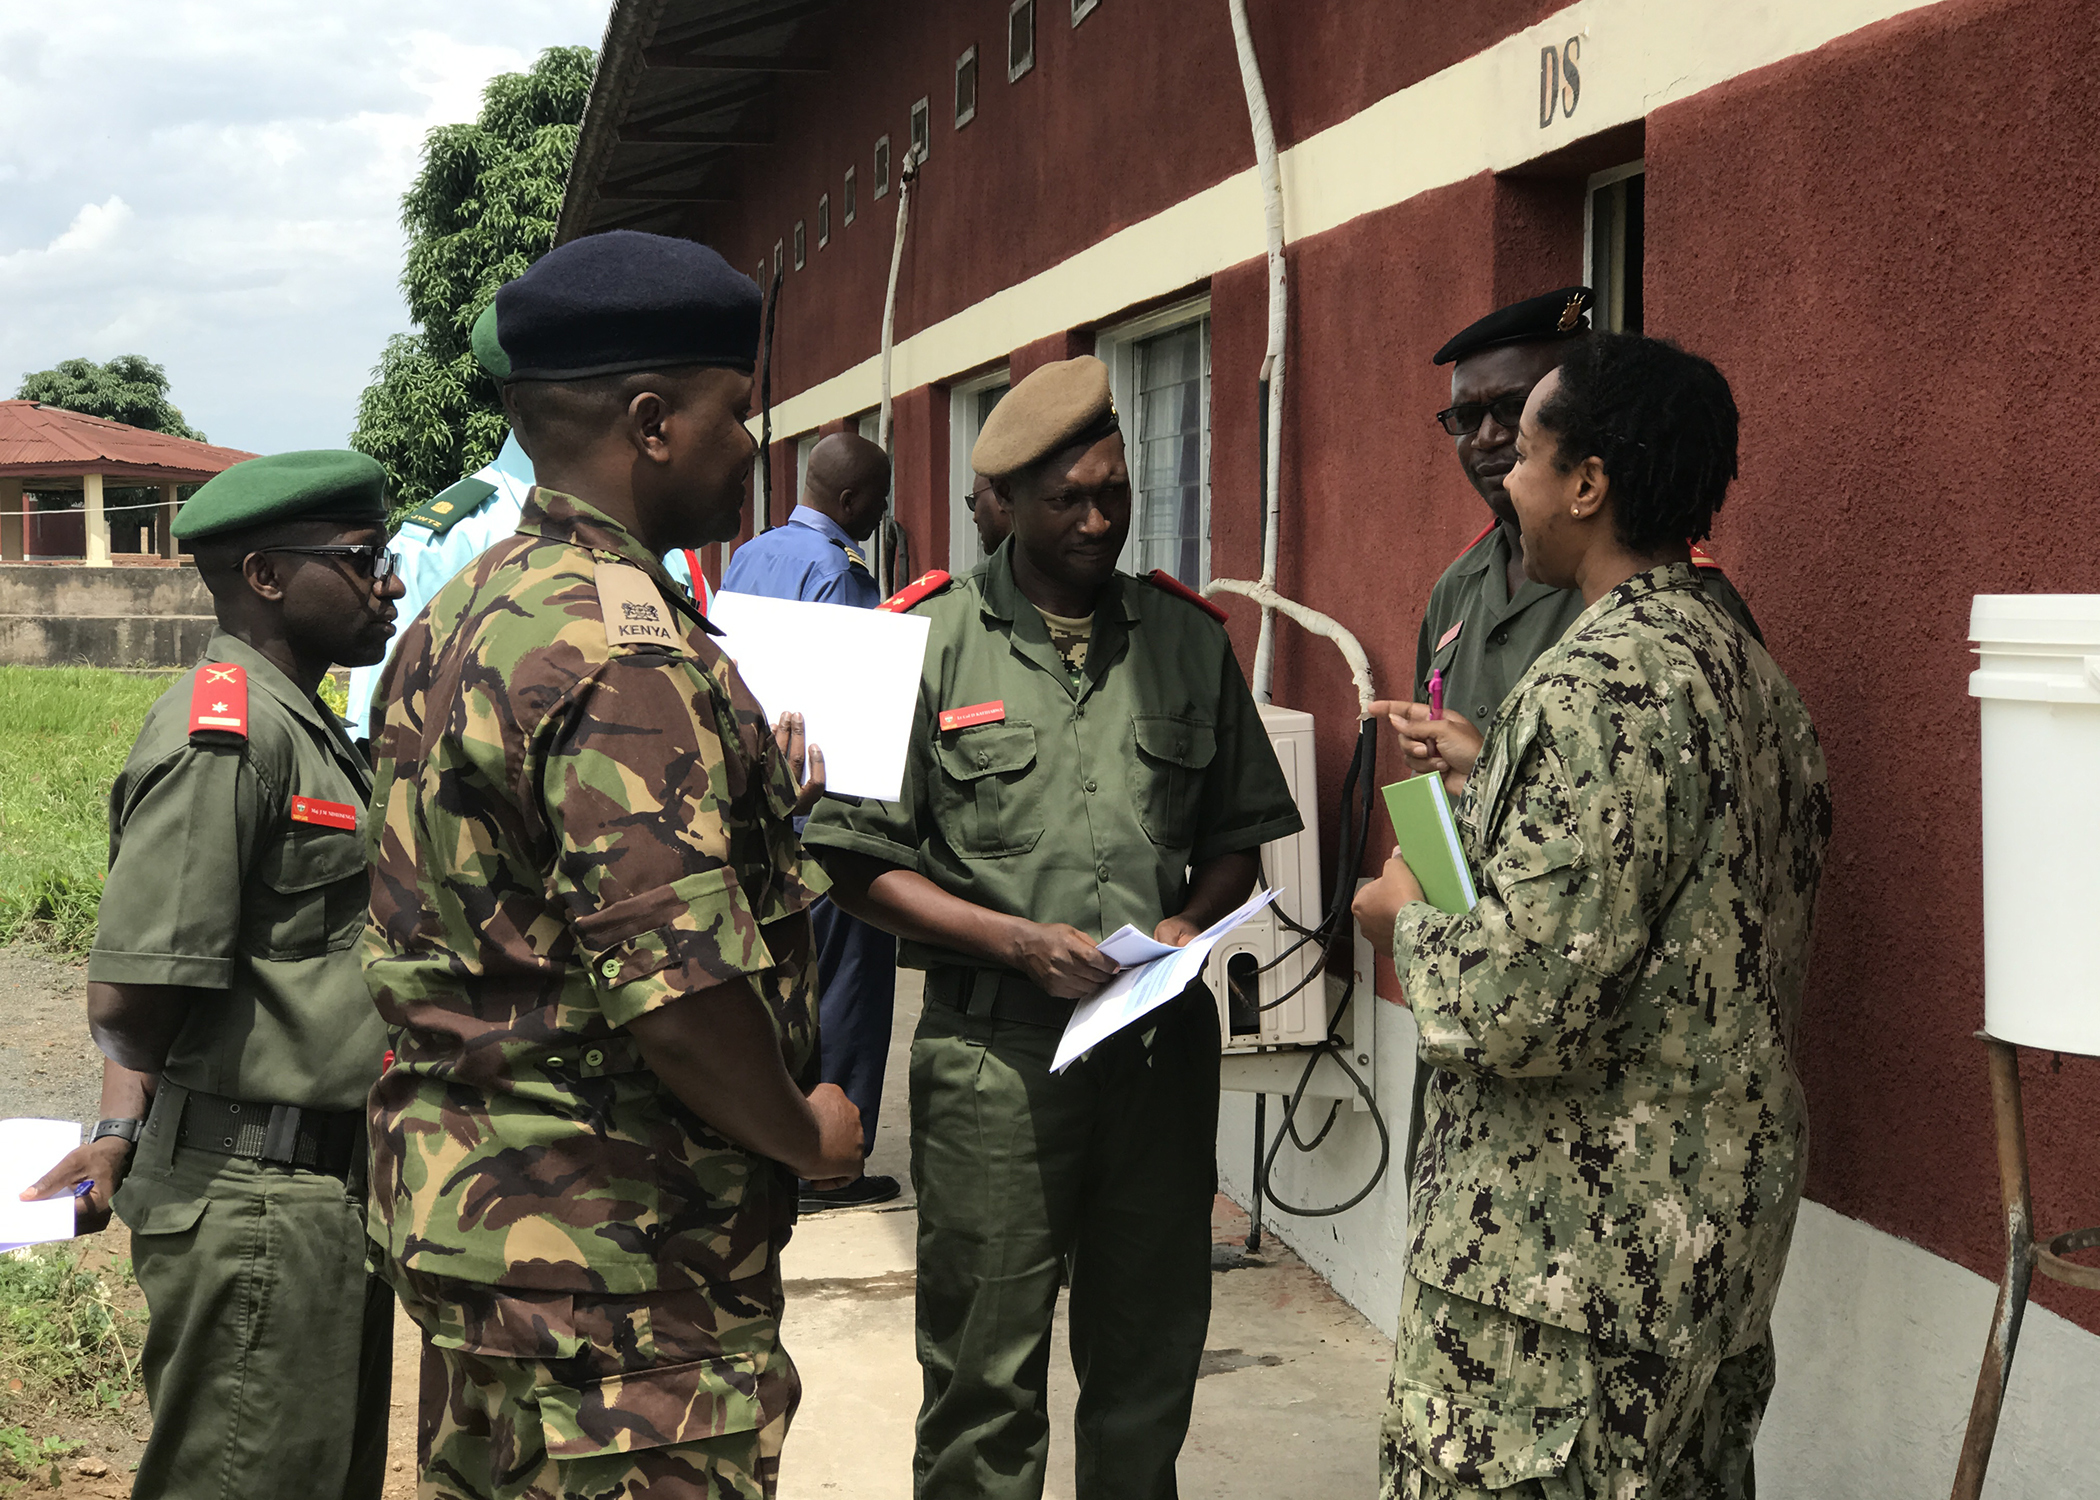 U.S. Navy Cmdr. Charity Hardison, public affairs director, Combined Joint Task Force-Horn of Africa, speaks with Burundi Senior Command and Staff College (SCSC) students during a subject matter expert exchange in Kinanira, Burundi, May 15, 2019.  Hardison was part of a four-person team of CJTF-HOA service members who visited Burundi to discuss best practices with the Burundi SCSC students. (Courtesy Photo)